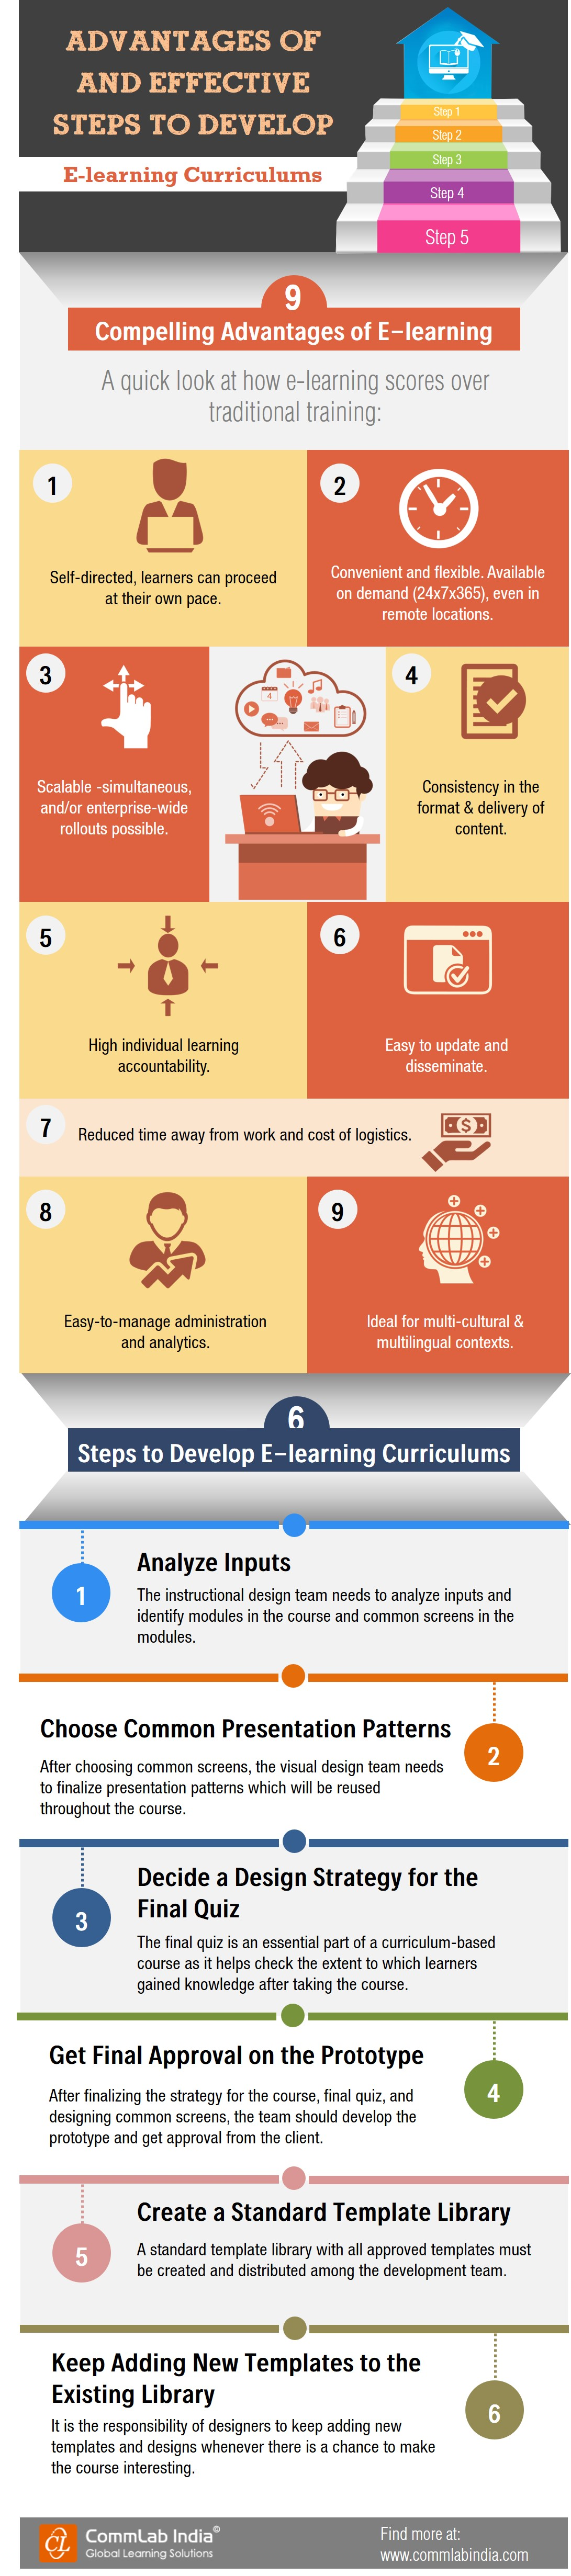 Advantages of and Effective Steps to Develop E-learning Curriculums[Infographic]